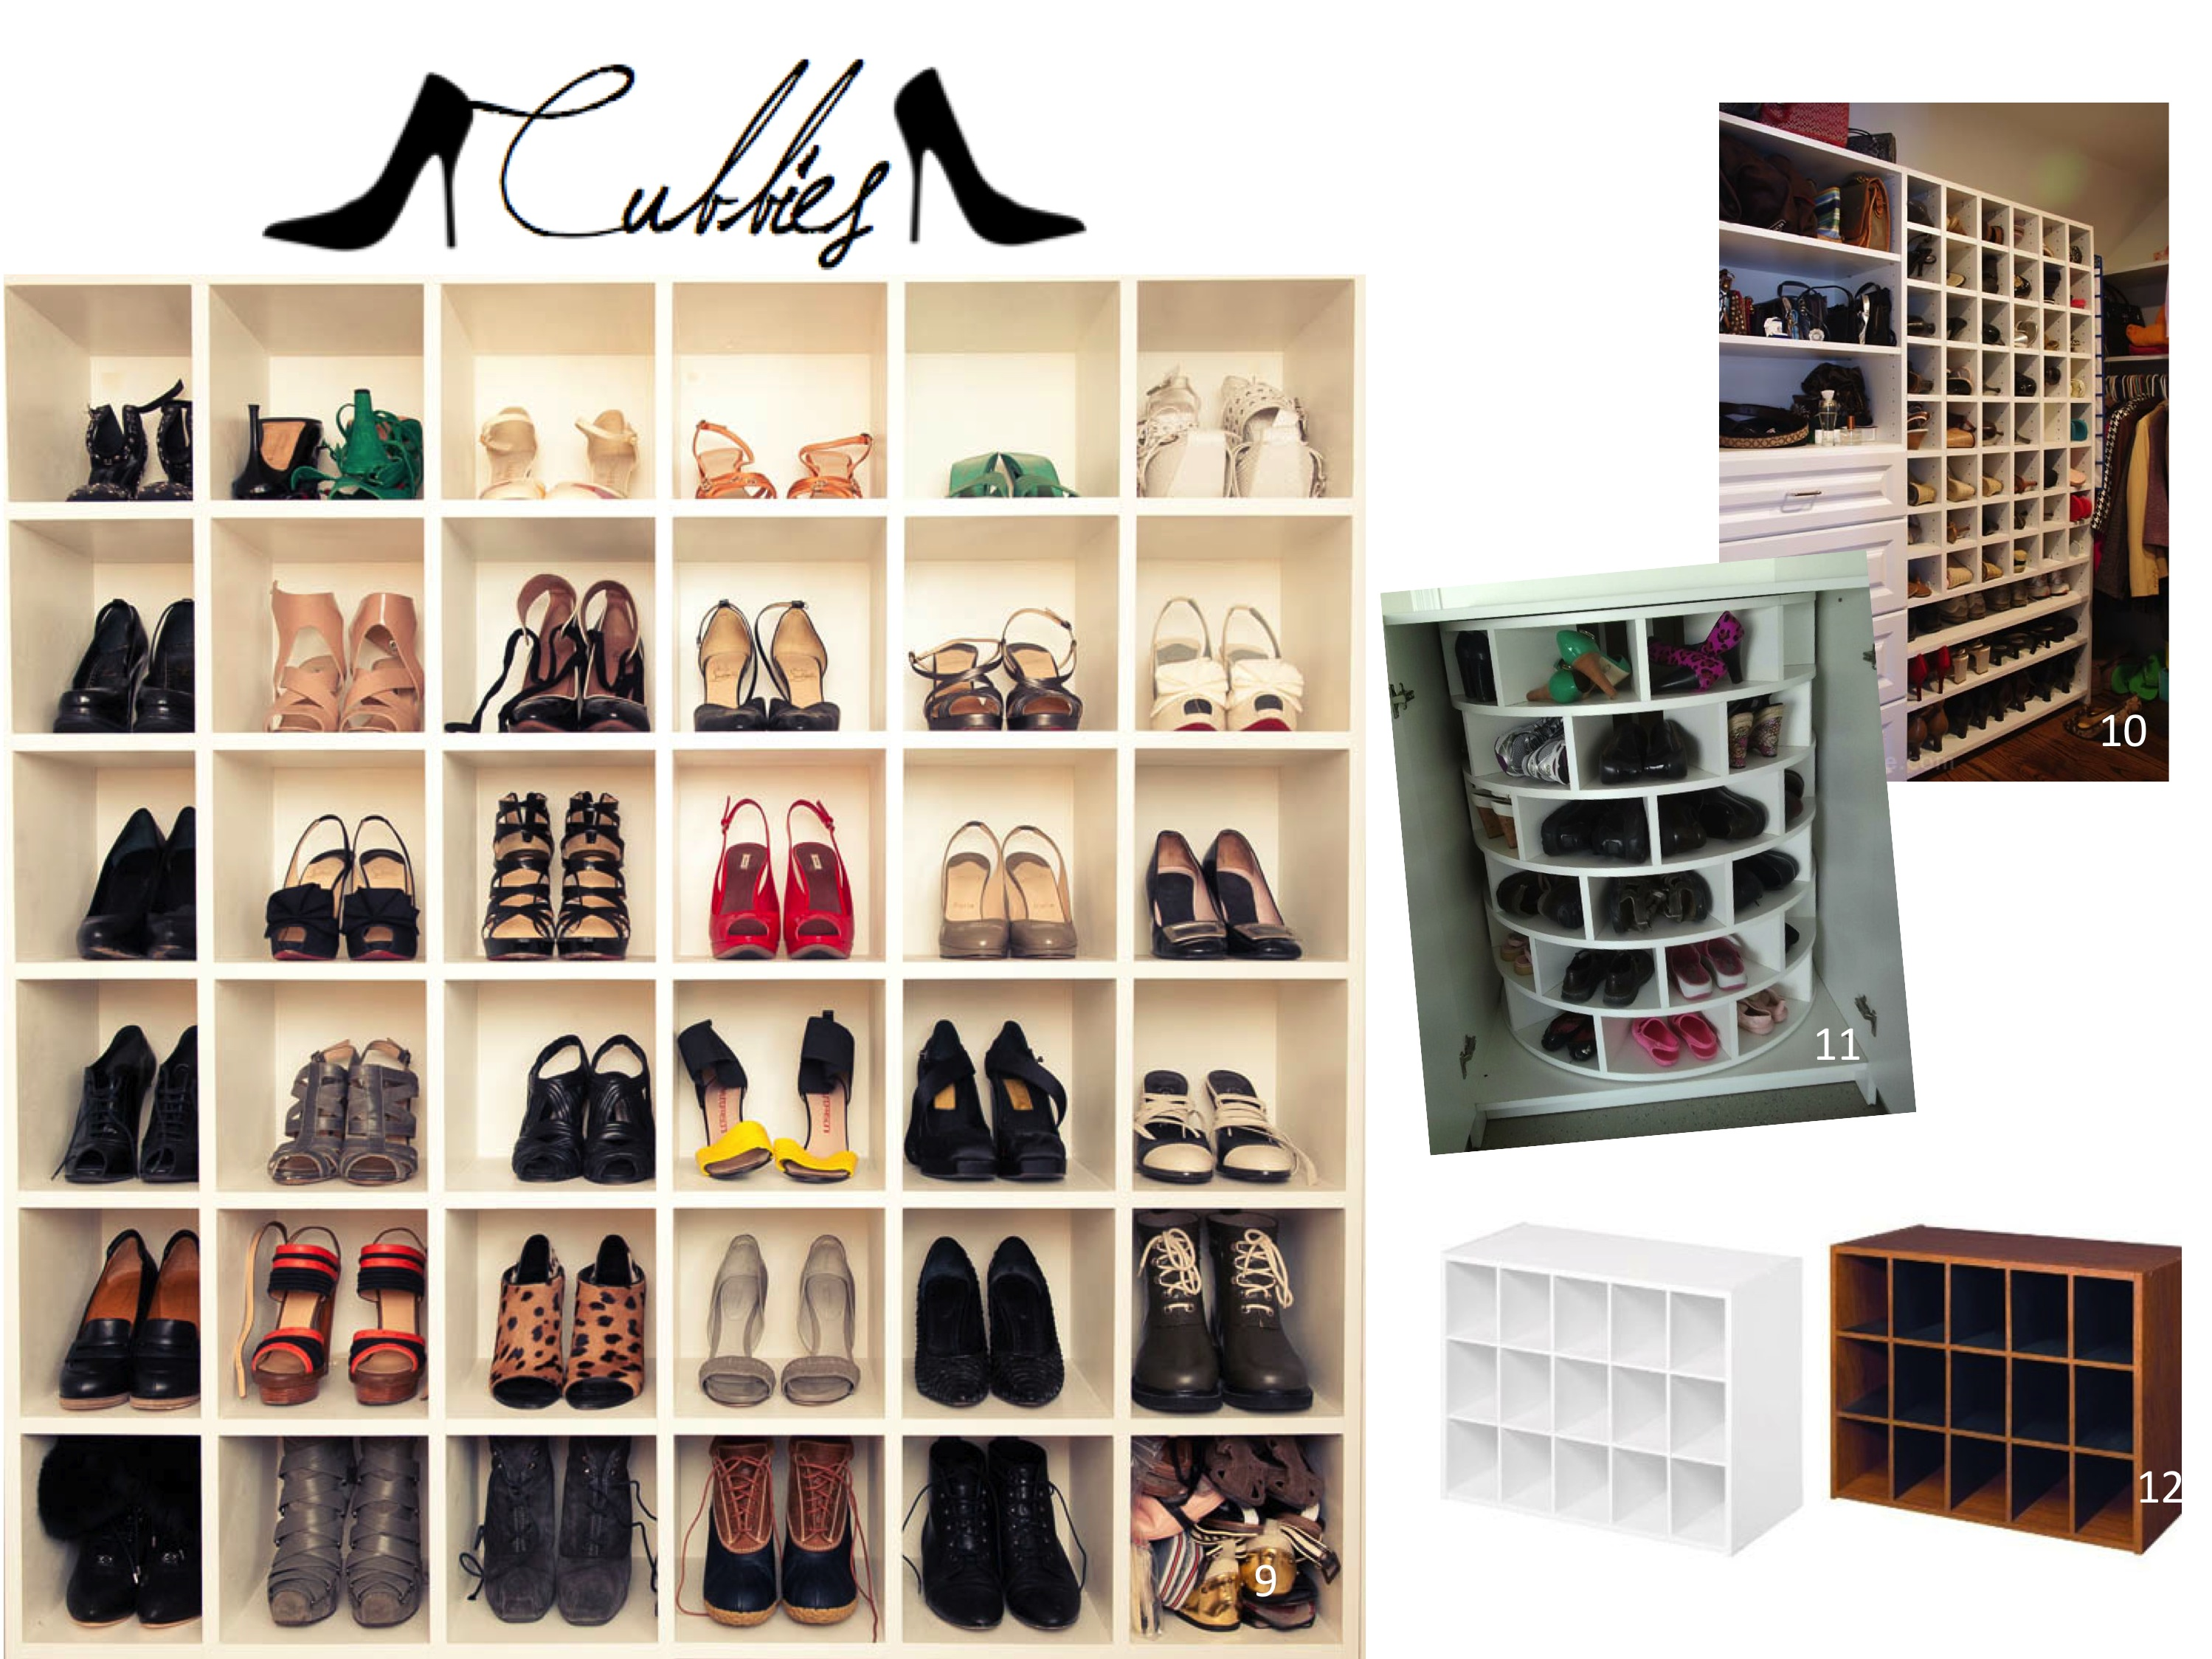 35  Shoe Closet Organization Ideas    I De clutter QAITfHJe